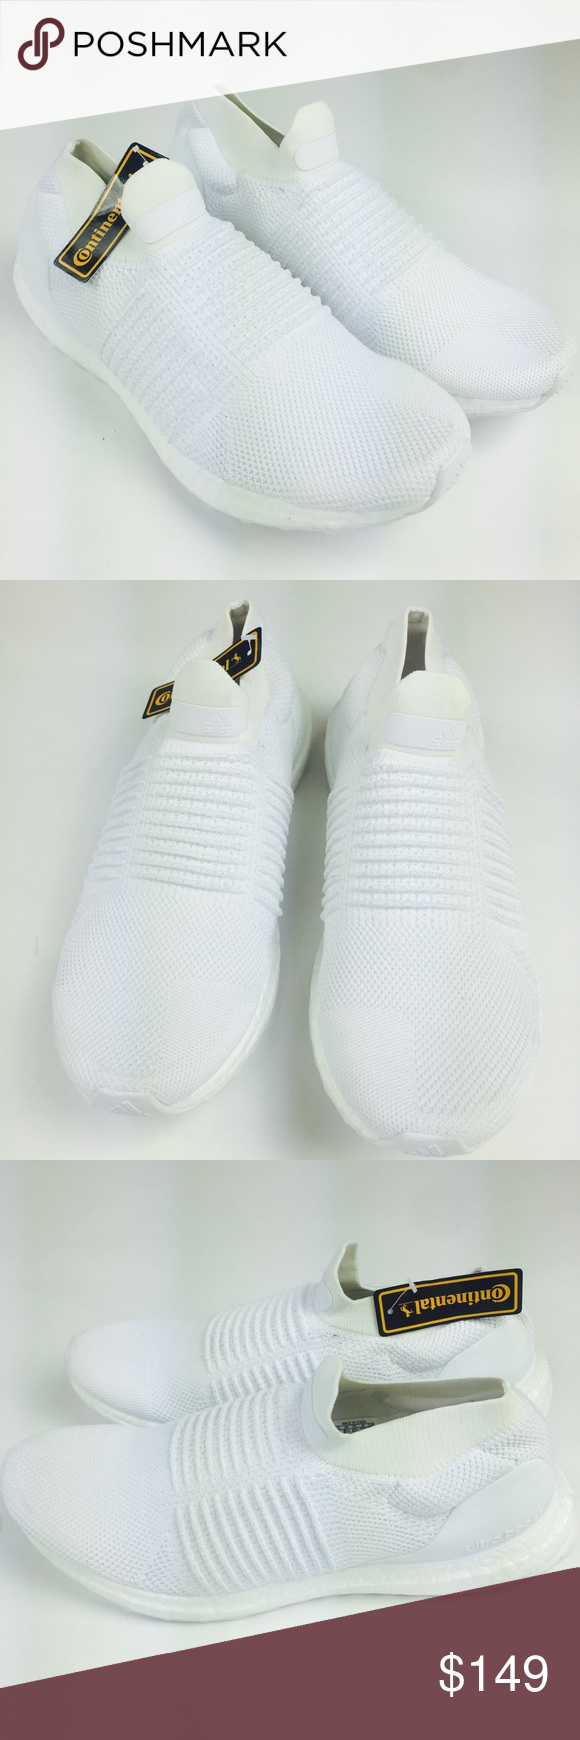 Adidas Ultra Boost Laceless White Shoes